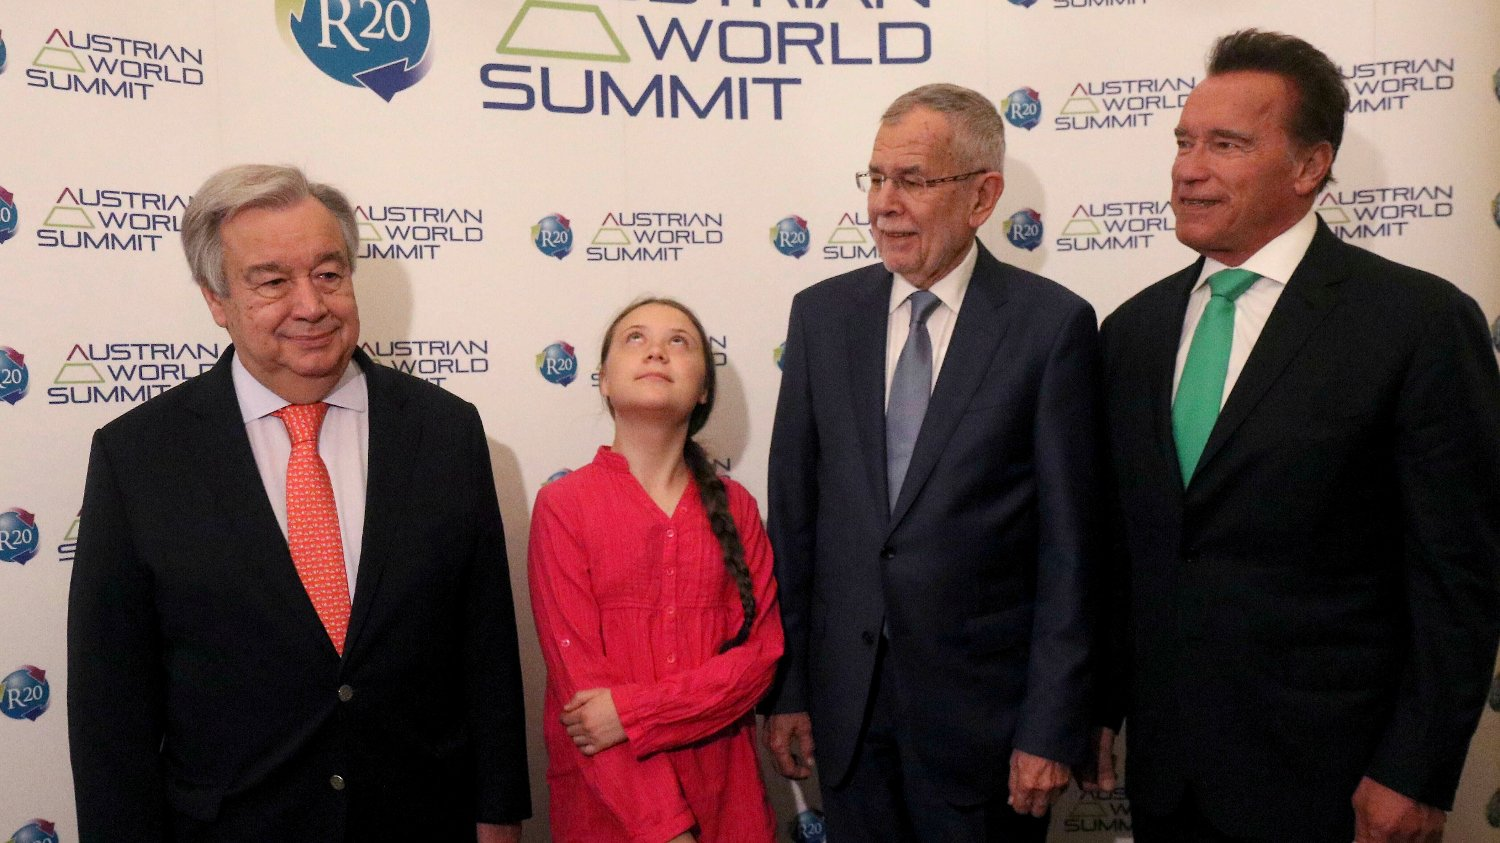 EU Climate Greta Thunberg FILE - In this Tuesday, May 28, 2019 file photo United Nations Secretary-General Antonio Guterres, Swedish climate activist Greta Thunberg, Austrian President Alexander Van der Bellen and former California Gov. Arnold Schwarzenegger, from left, pose before the R20 Austrian world summit at Hofburg palace in Vienna, Austria. In a wide-ranging monologue on Swedish public radio, teenage climate activist Greta Thunberg recounts how world leaders queued up to have their picture taken with her even as they shied away from acknowledging the grim scientific fact that time is running out to curb global warming.